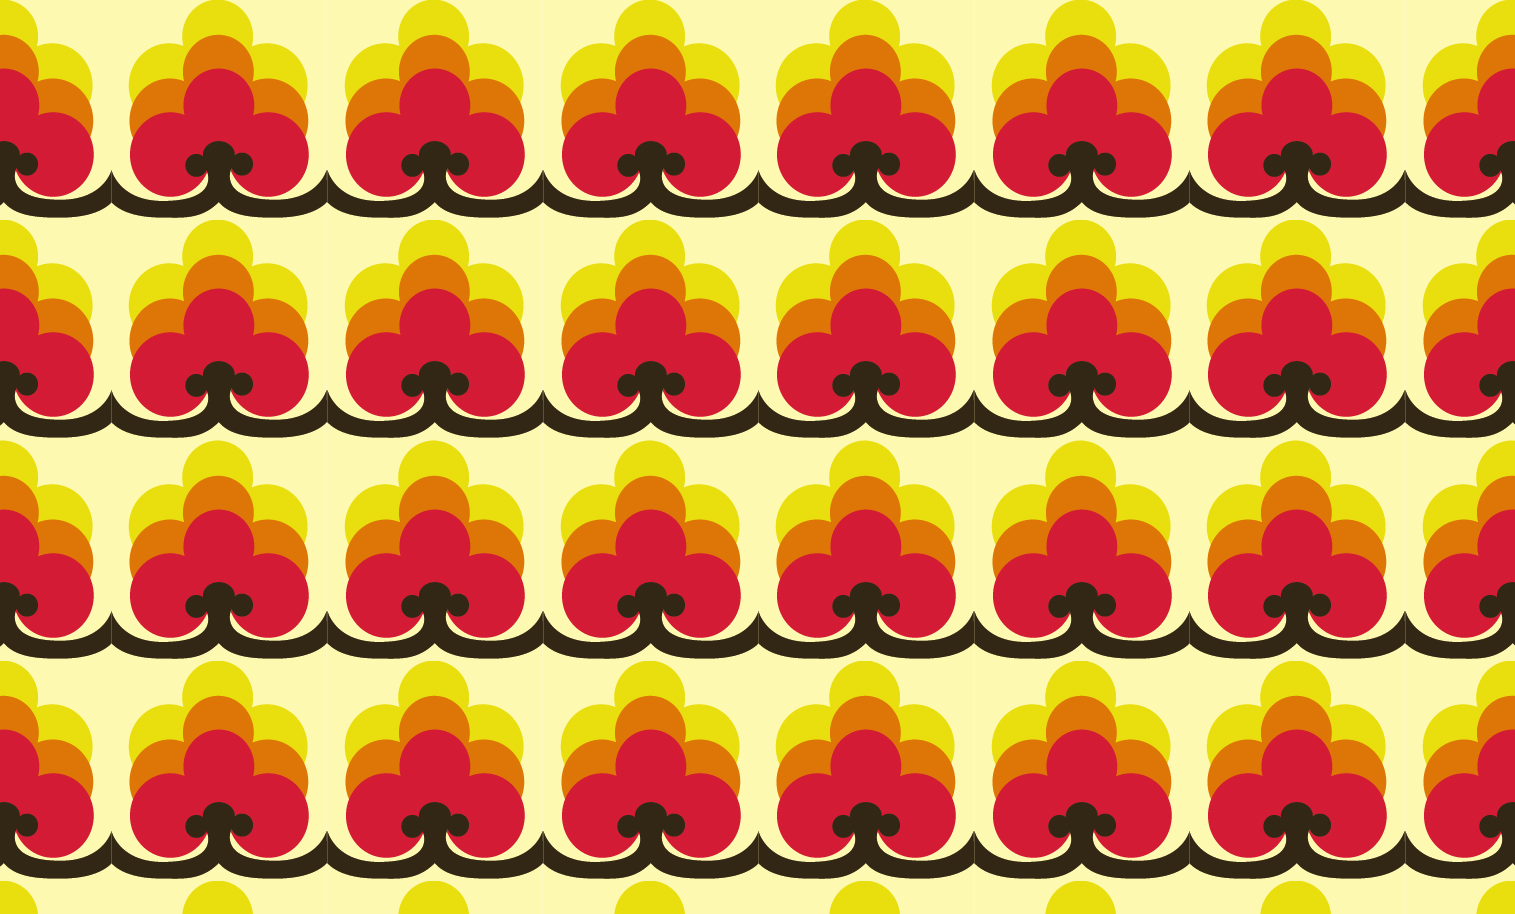 Repeating pattern designed for clothing brand, Closet Mod